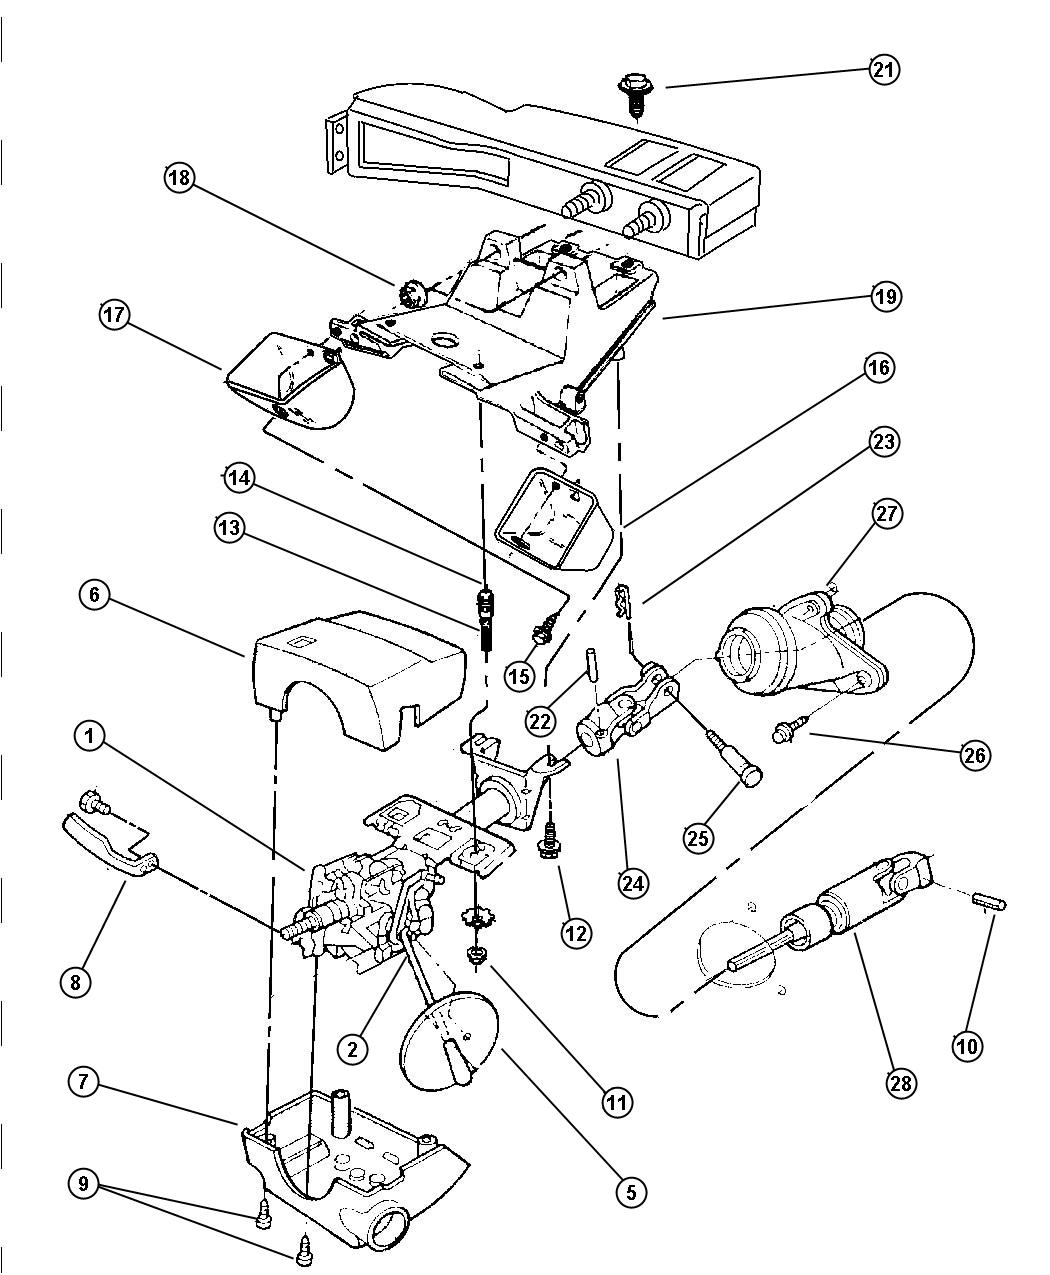 Service manual [Steering Column Removal 1974 Citroen Cx